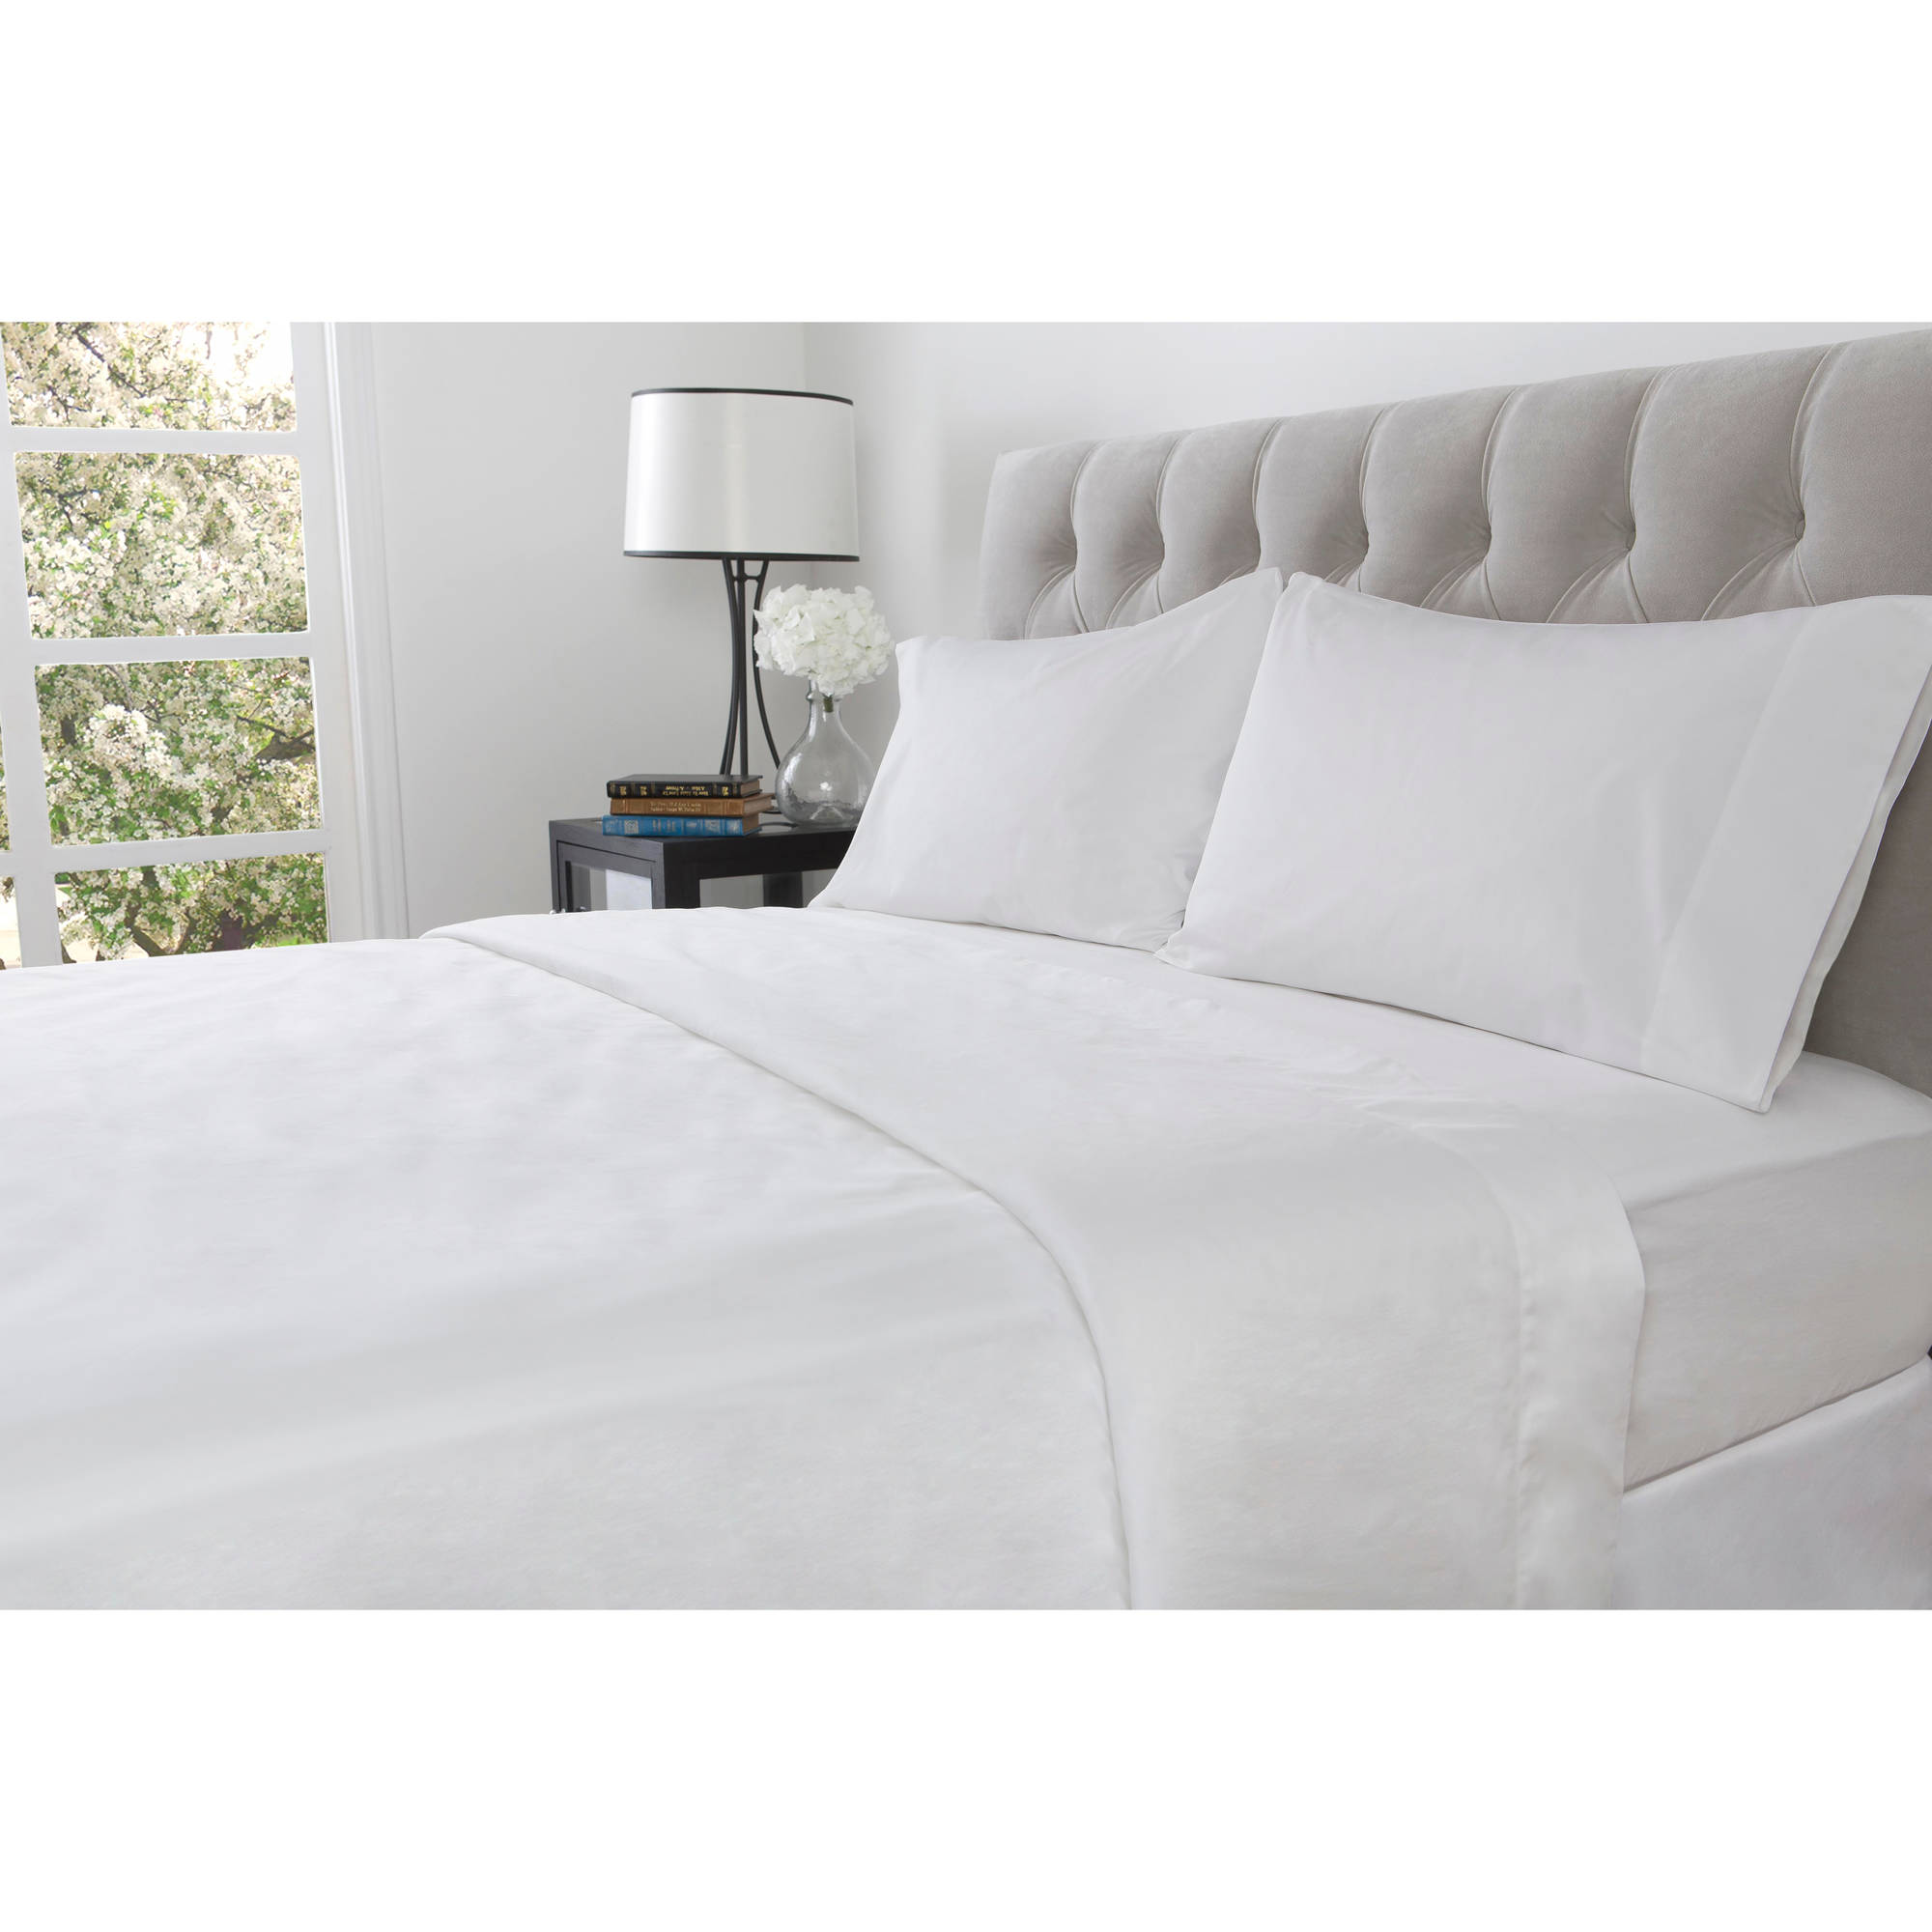 Hotel Brand 600 Thread Count Sheet Set